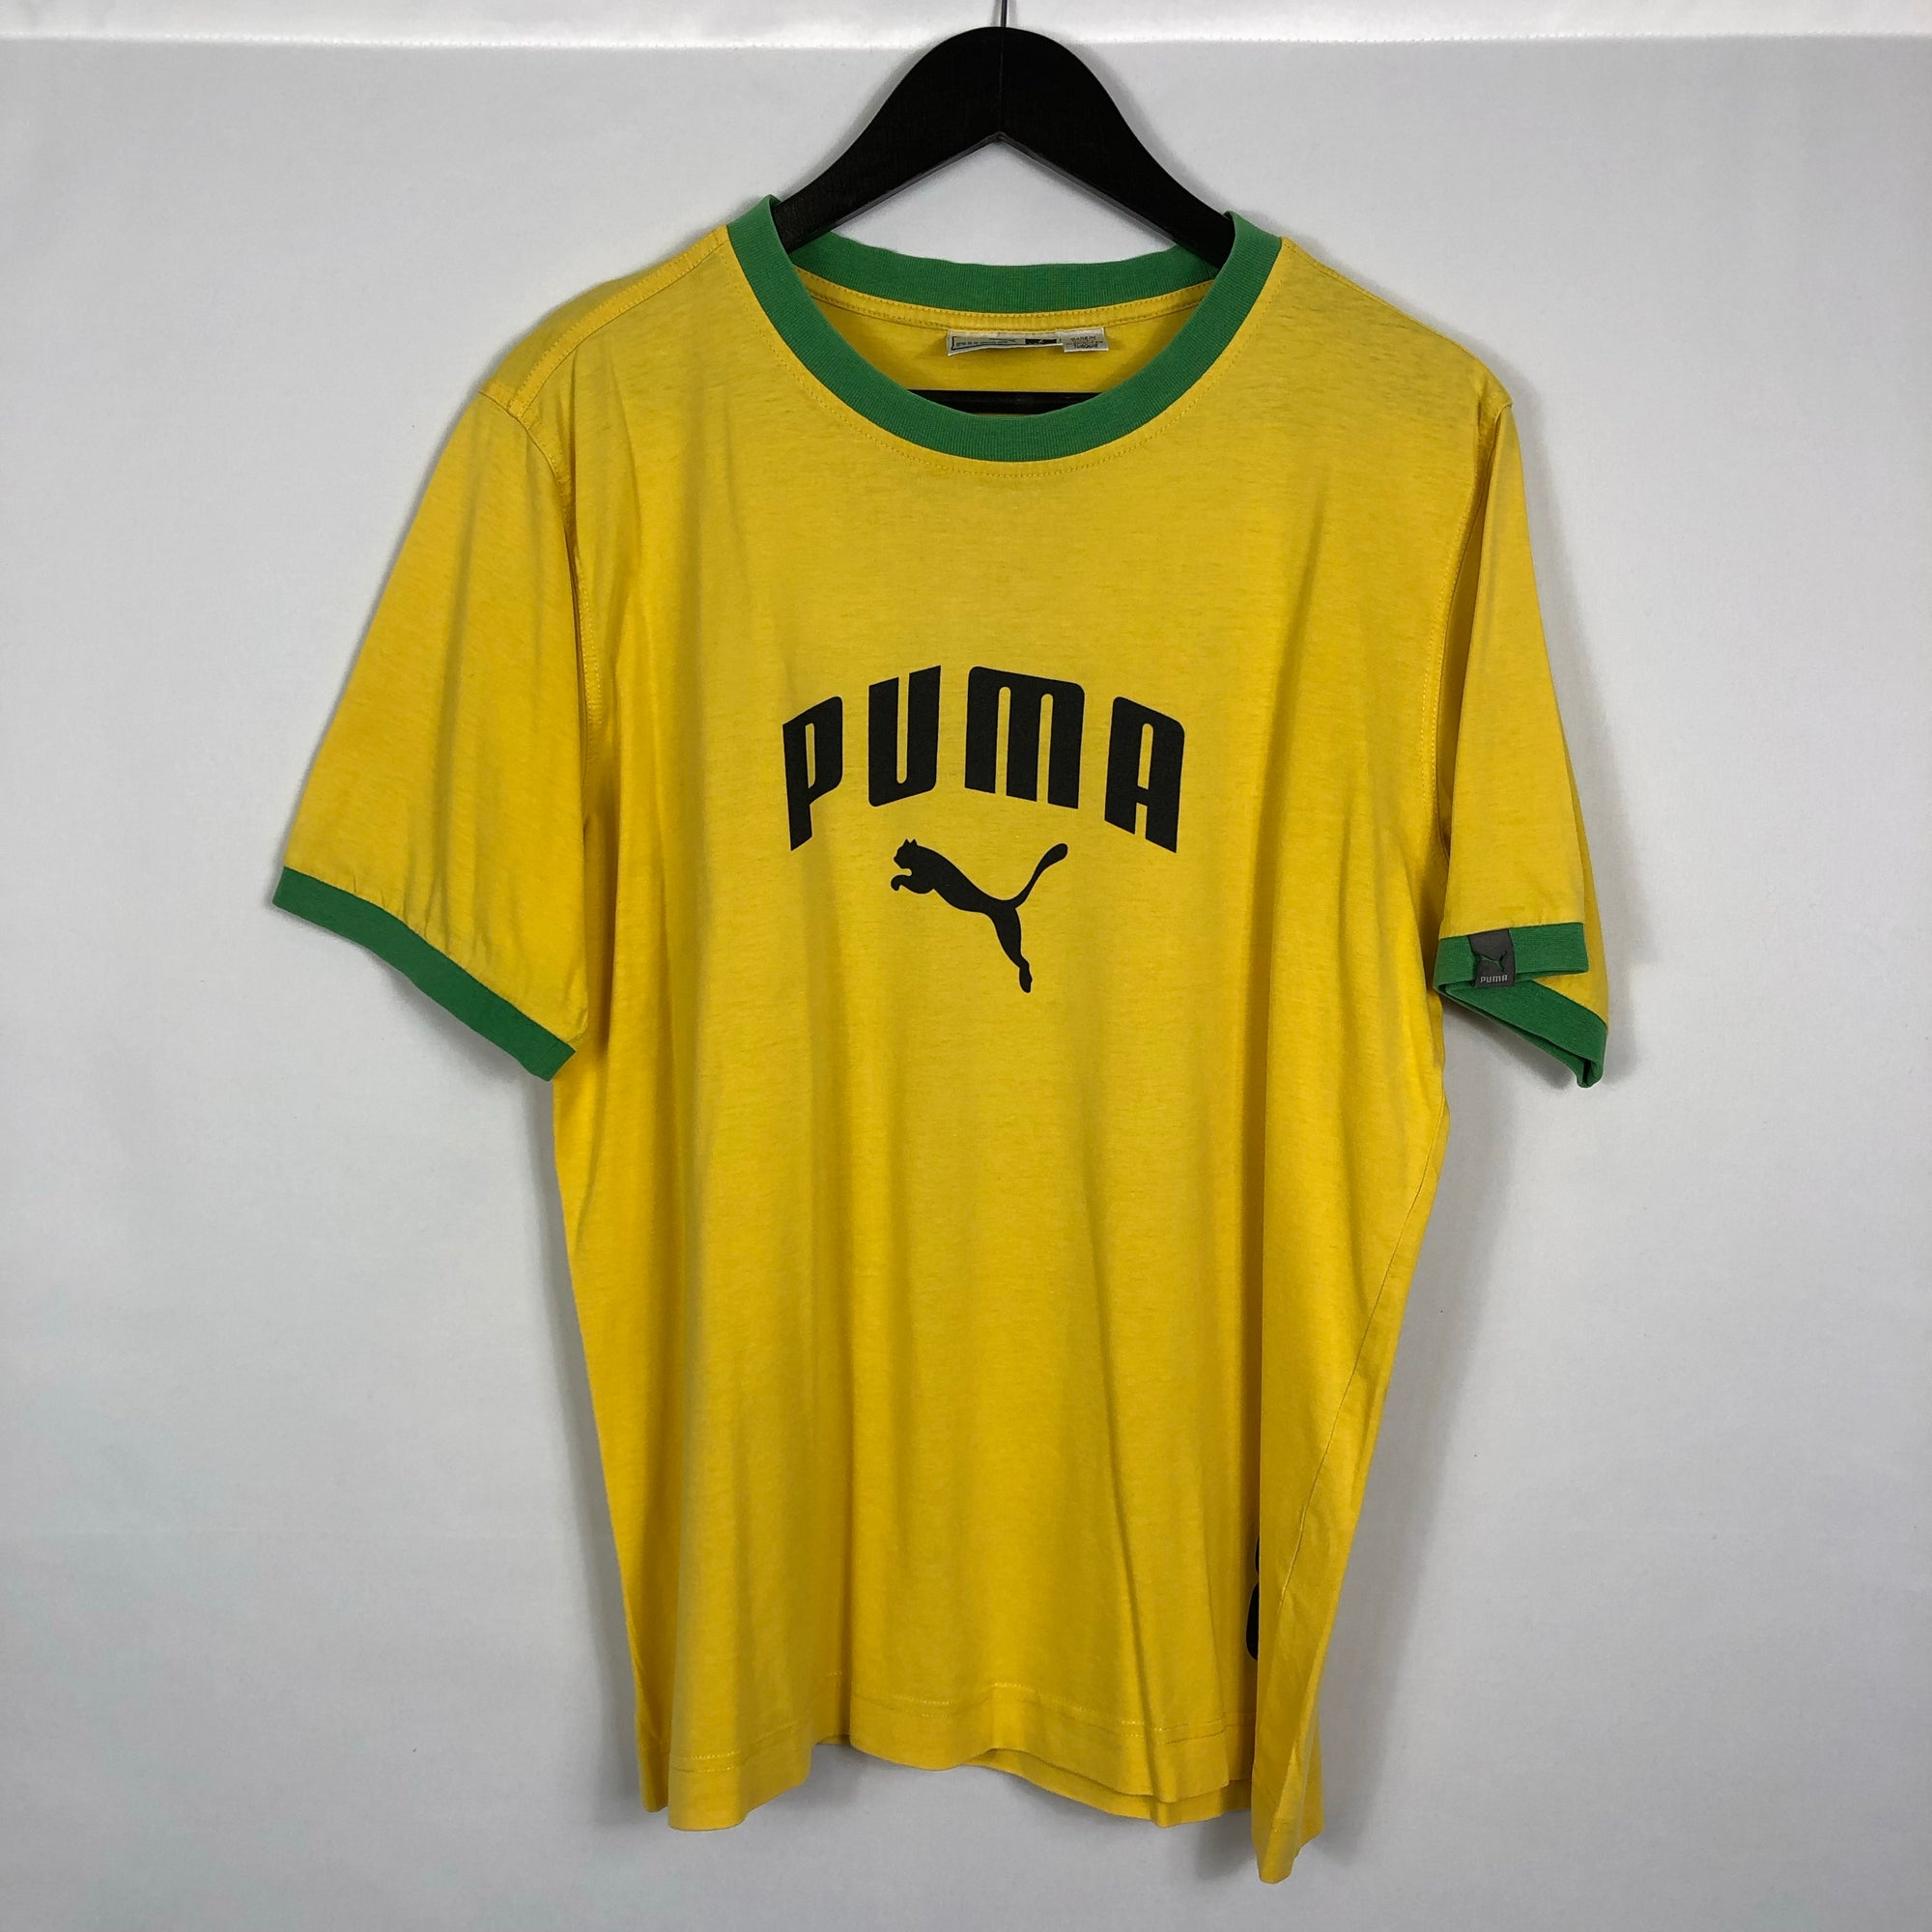 Puma Tee in Yellow & Green - Men's Medium/Women's Large